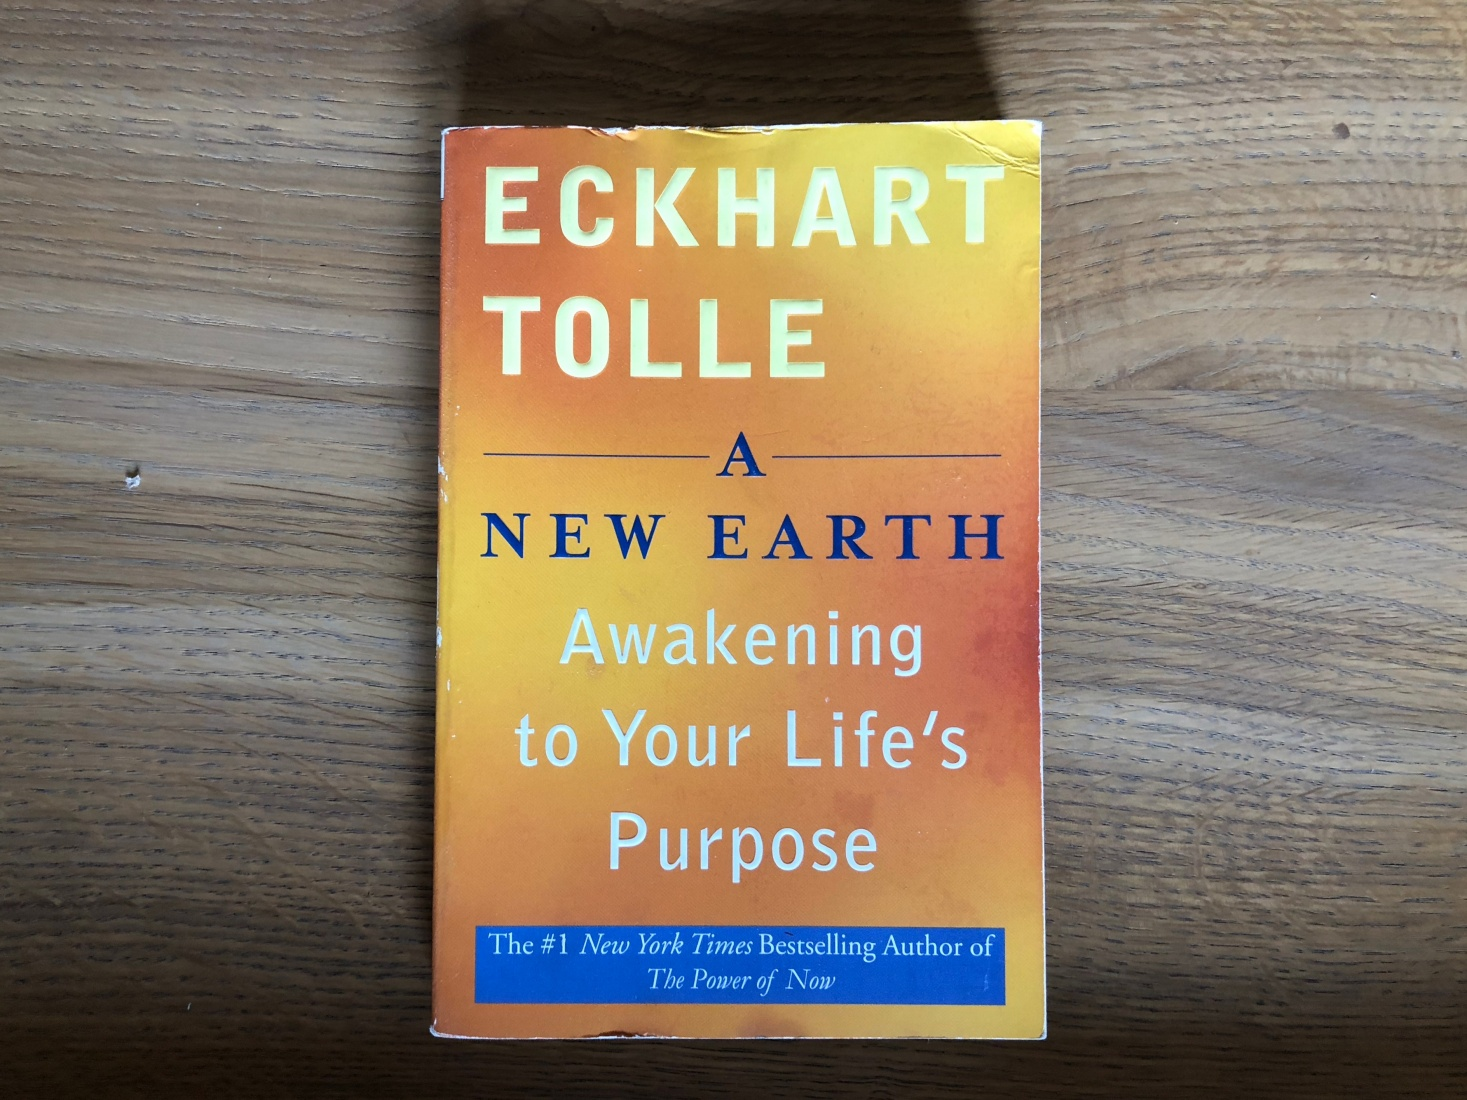 Cover of Eckhart Tolle book A New Earth: Awakening to You rLife's Purpose.